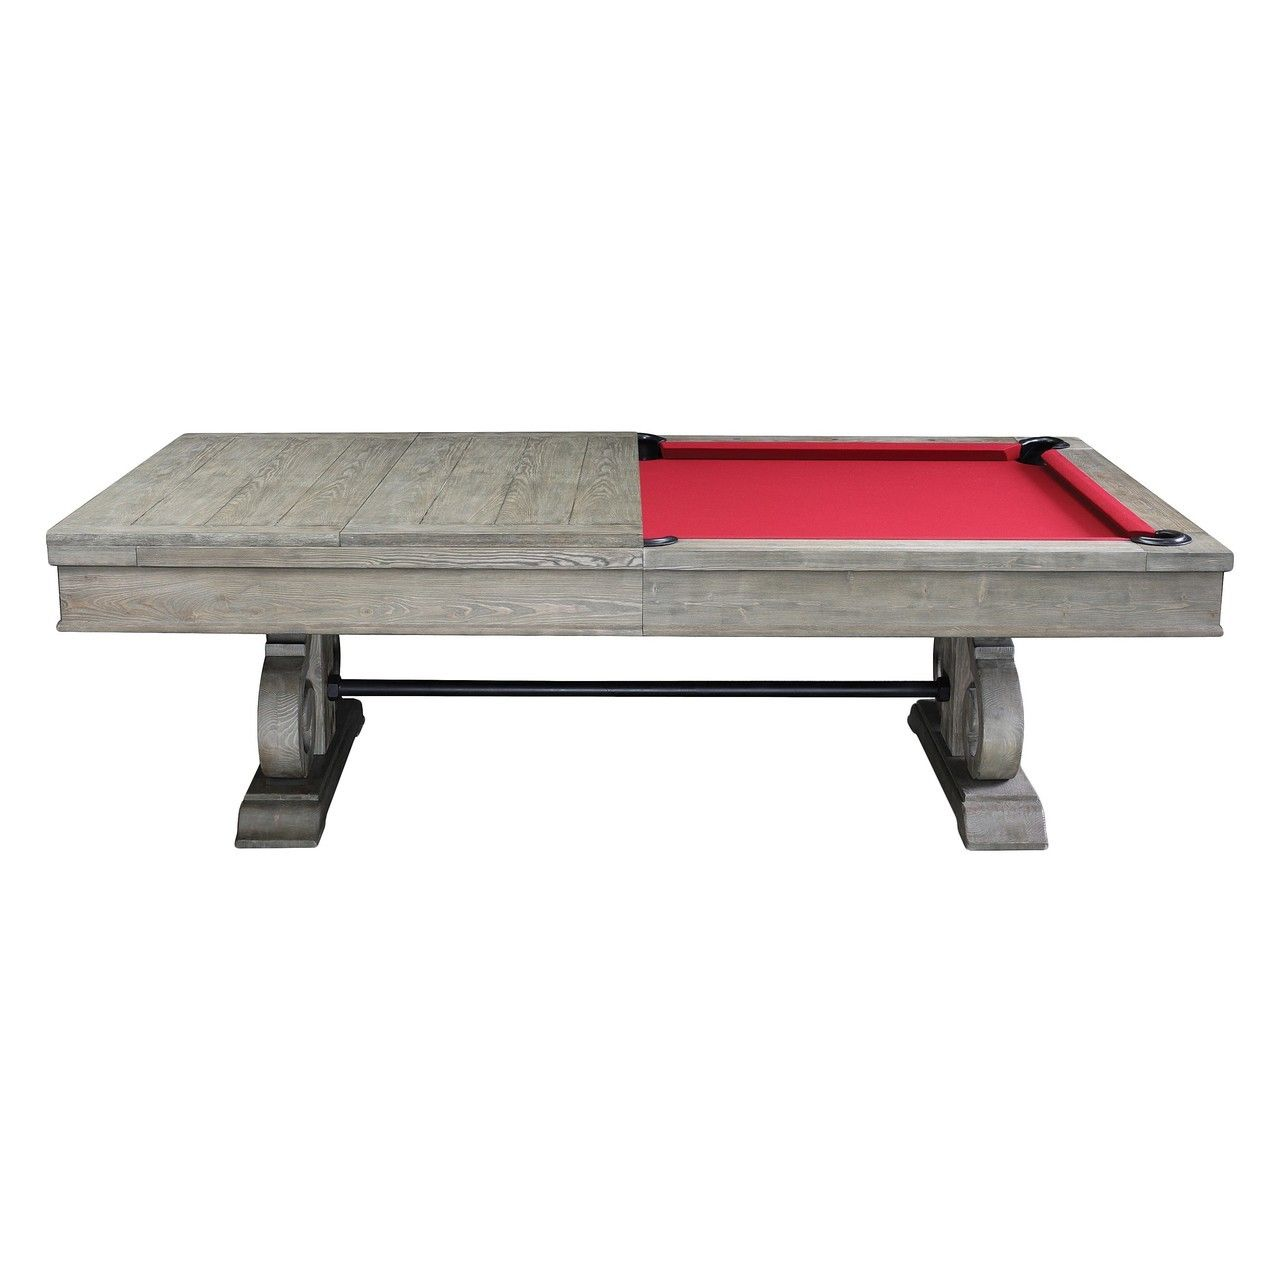 Dining Room Top Pool Tables Dining Room Pool Table Pool Table Pool Table Dining Table